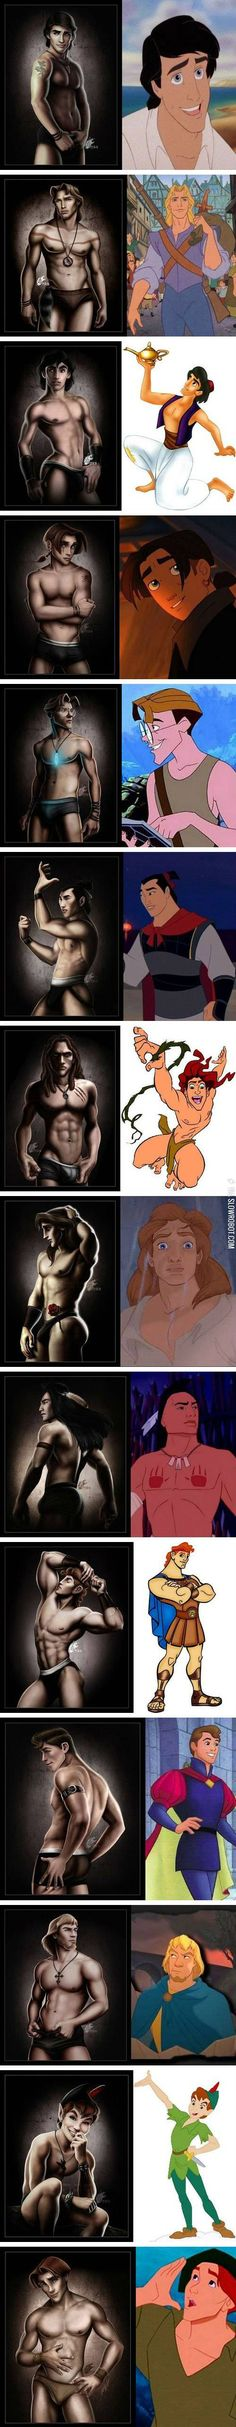 If Disney princes were underwear models. Interesting take on Disney male icons.